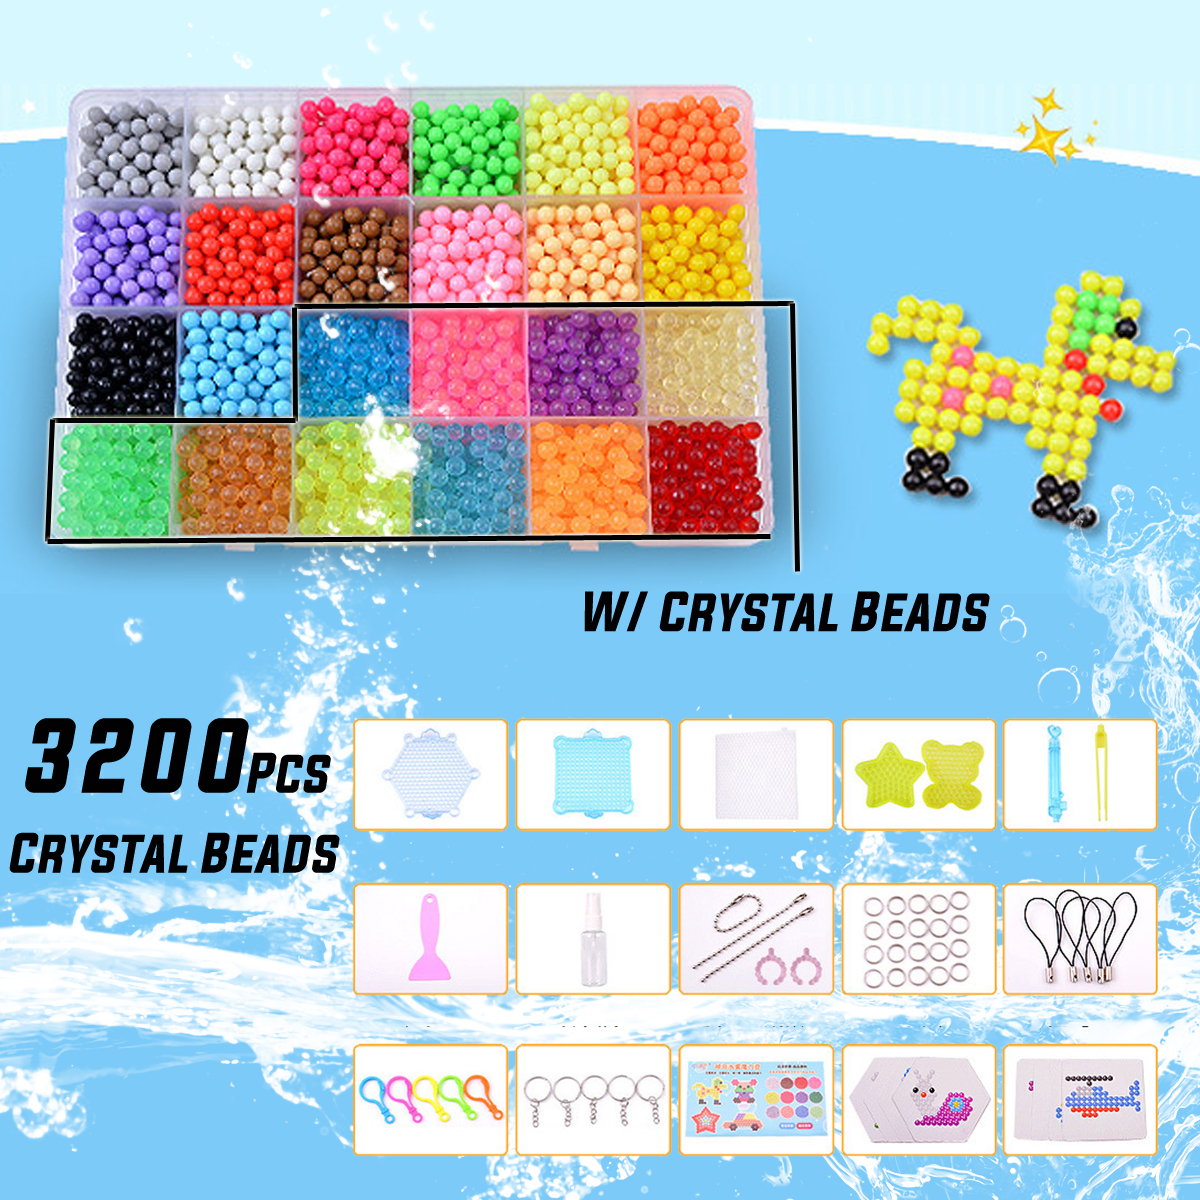 24 Color 3200pcs Box Set Of For Hama Beads For Children Educational Jigsaw Puzzle DIY Toys Fuse Beads Pegboard